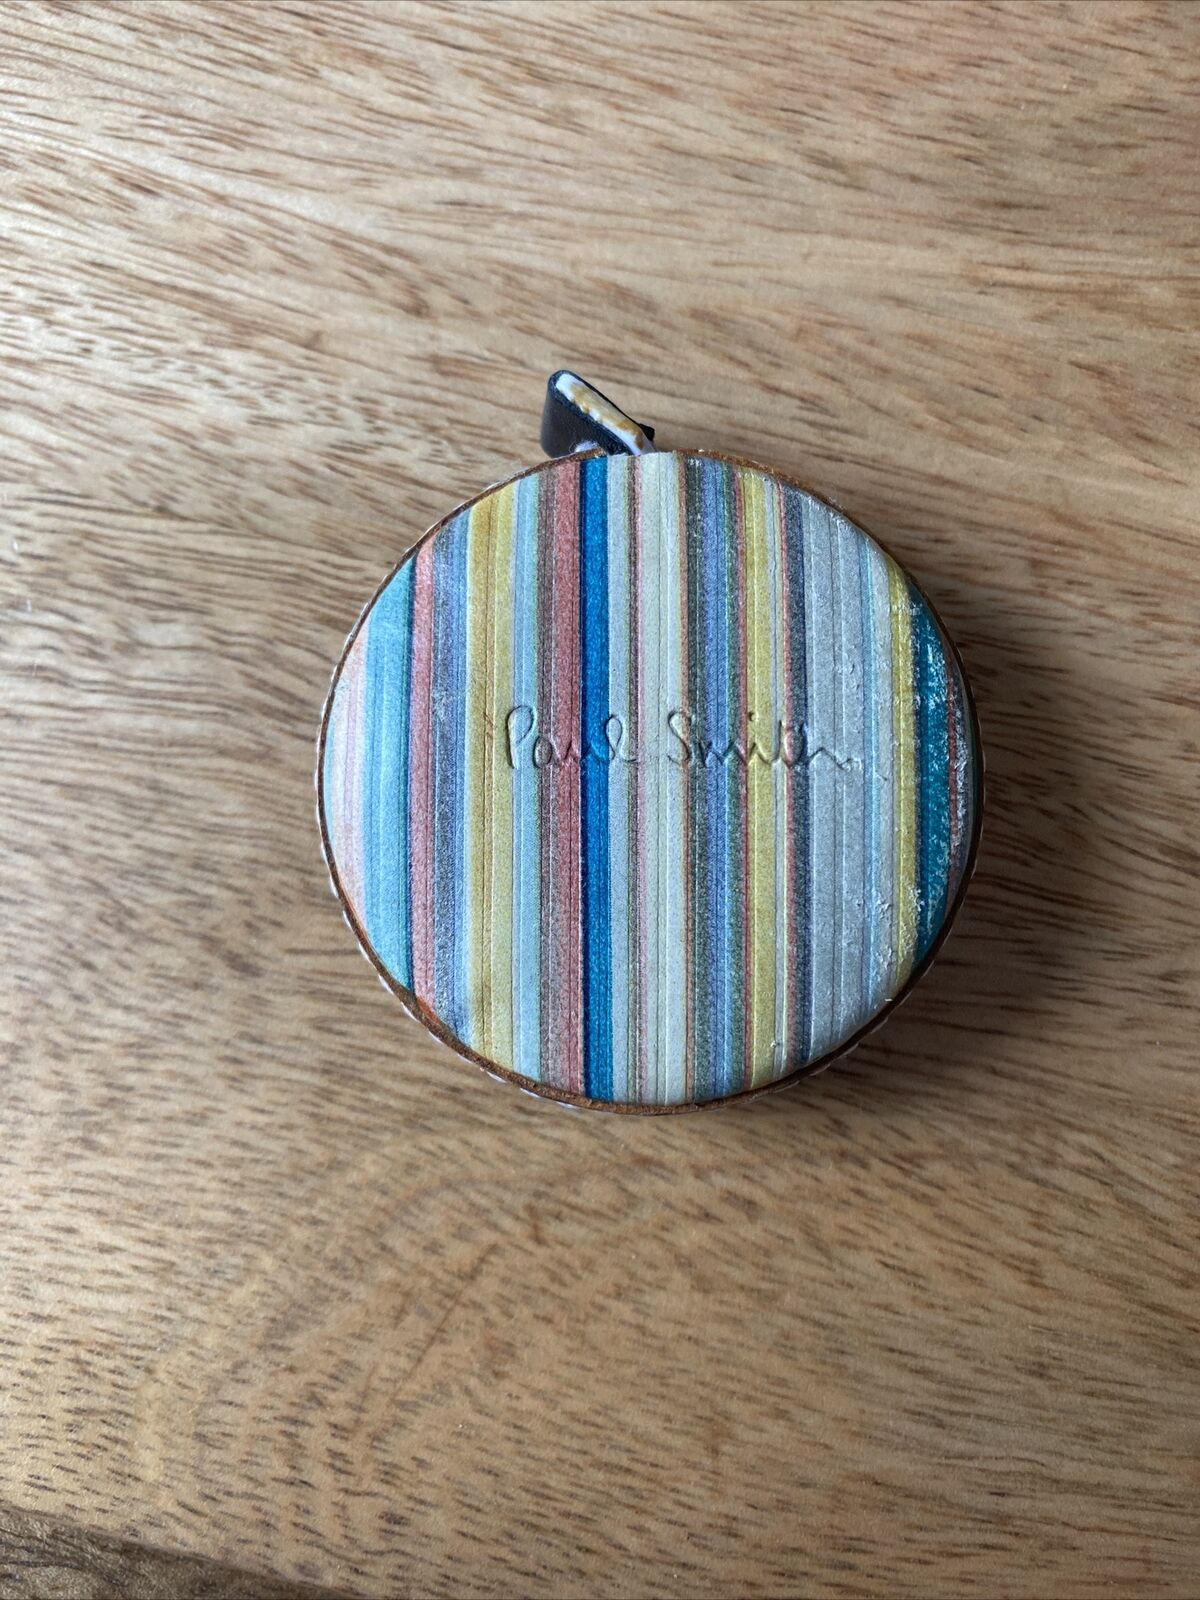 Paul Smith Rolling Tape Measure Leather Stripes Limited Edition 1m Rpp